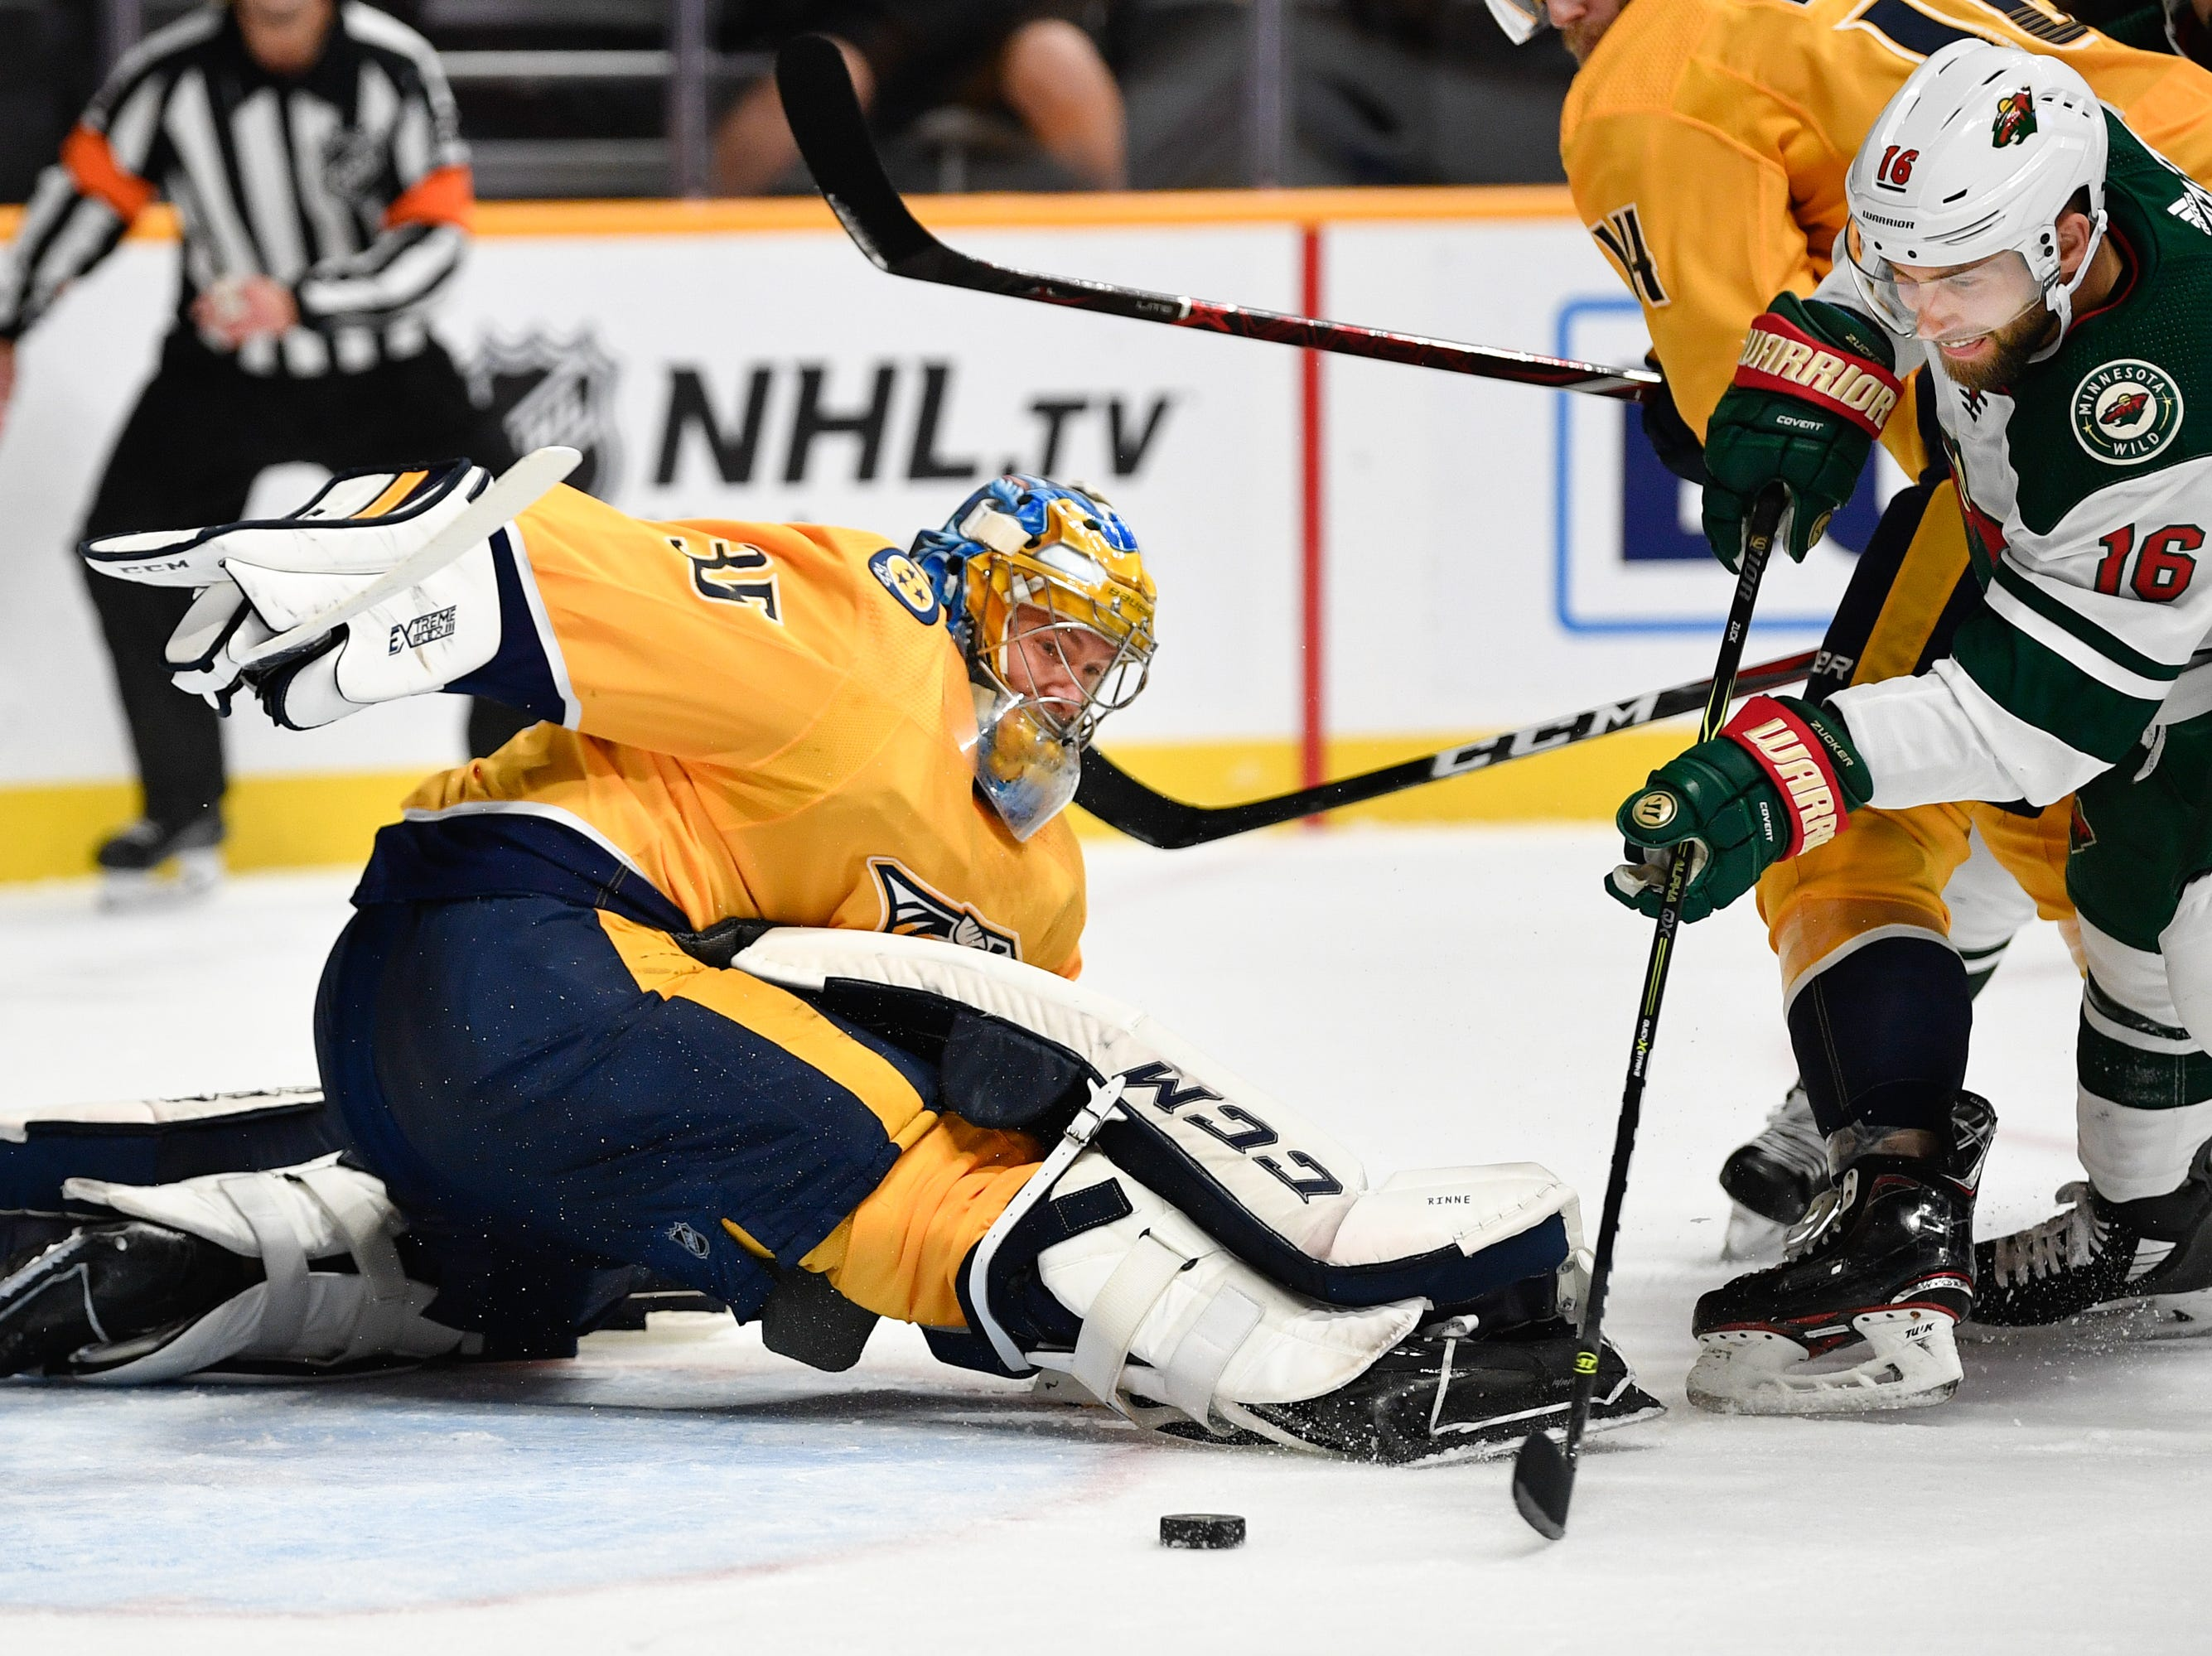 Nashville Predators goaltender Pekka Rinne (35) defends against Minnesota Wild left wing Jason Zucker (16) during the second period at Bridgestone Arena in Nashville, Tenn., Monday, Oct. 15, 2018.